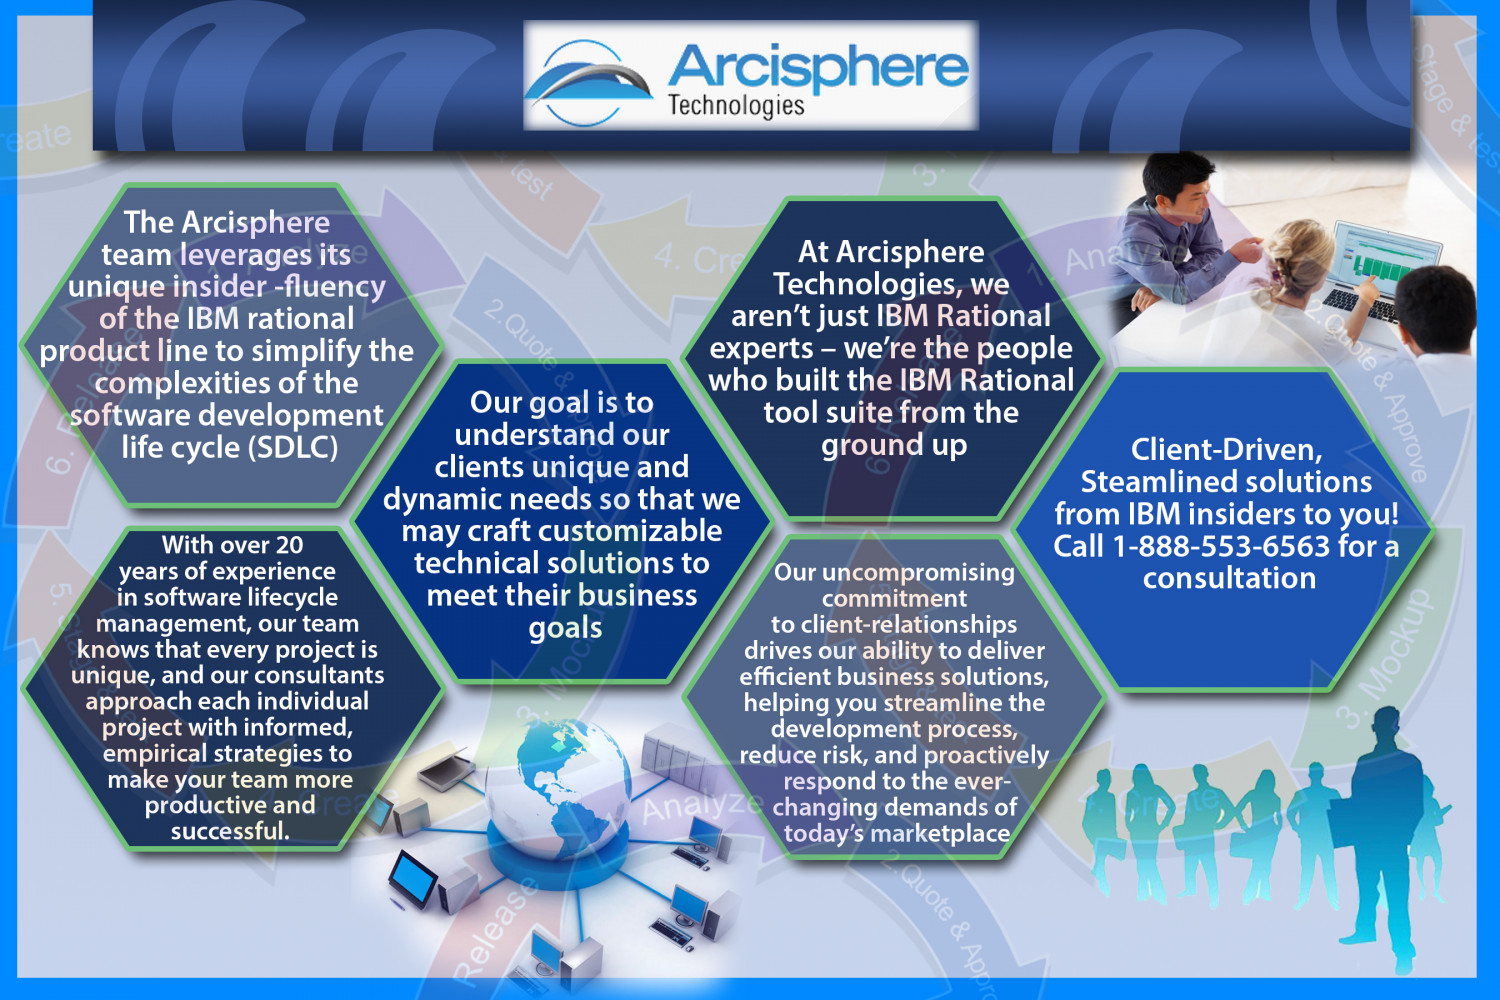 Arcisphere - Agile Software Development Company Infographic